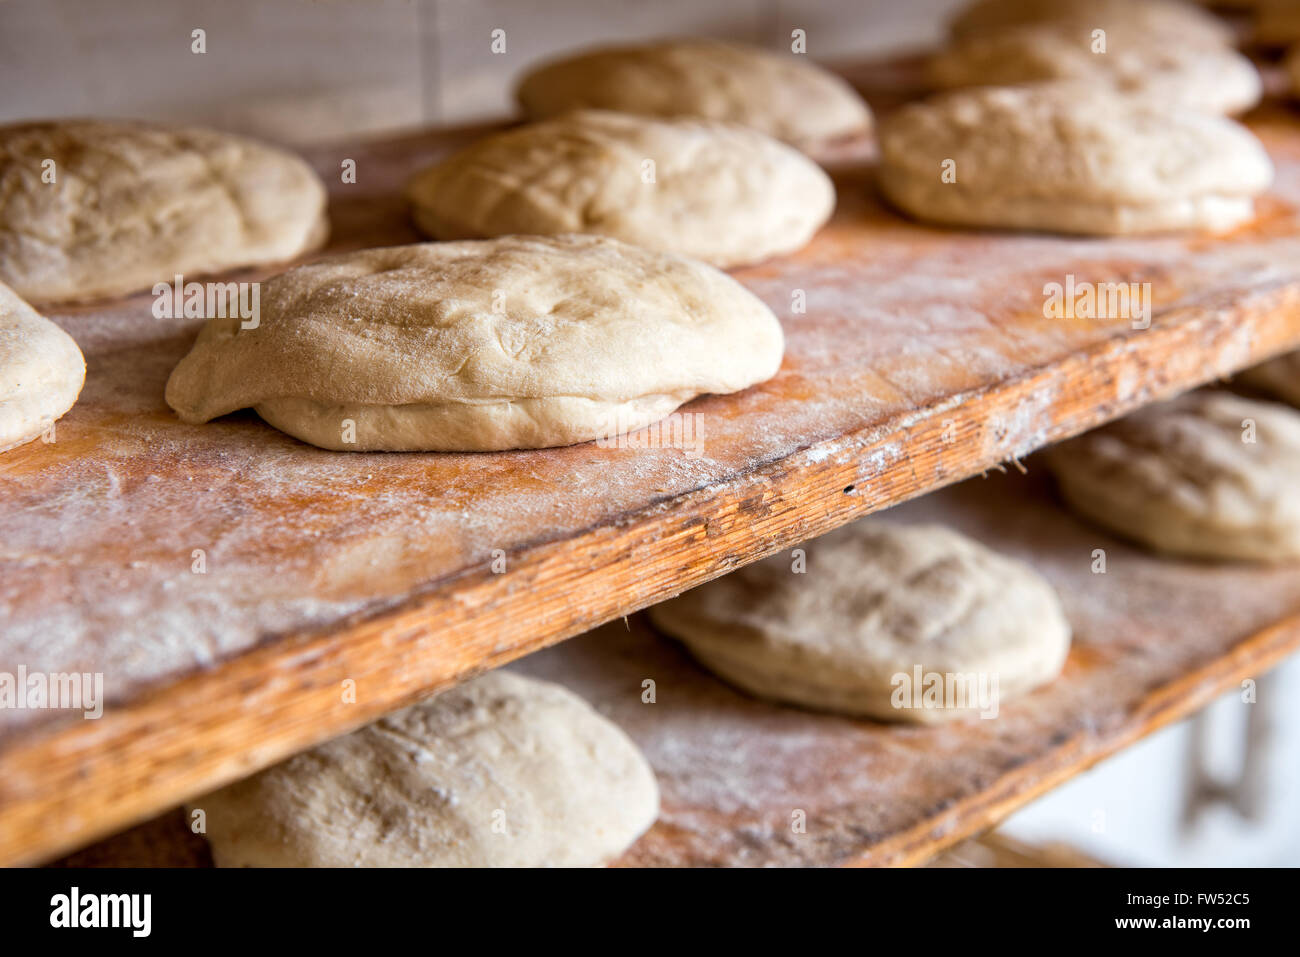 Prepared raw bread dough shaped into loaves on wooden shelves ready to go into the oven in a bakery, close up view - Stock Image